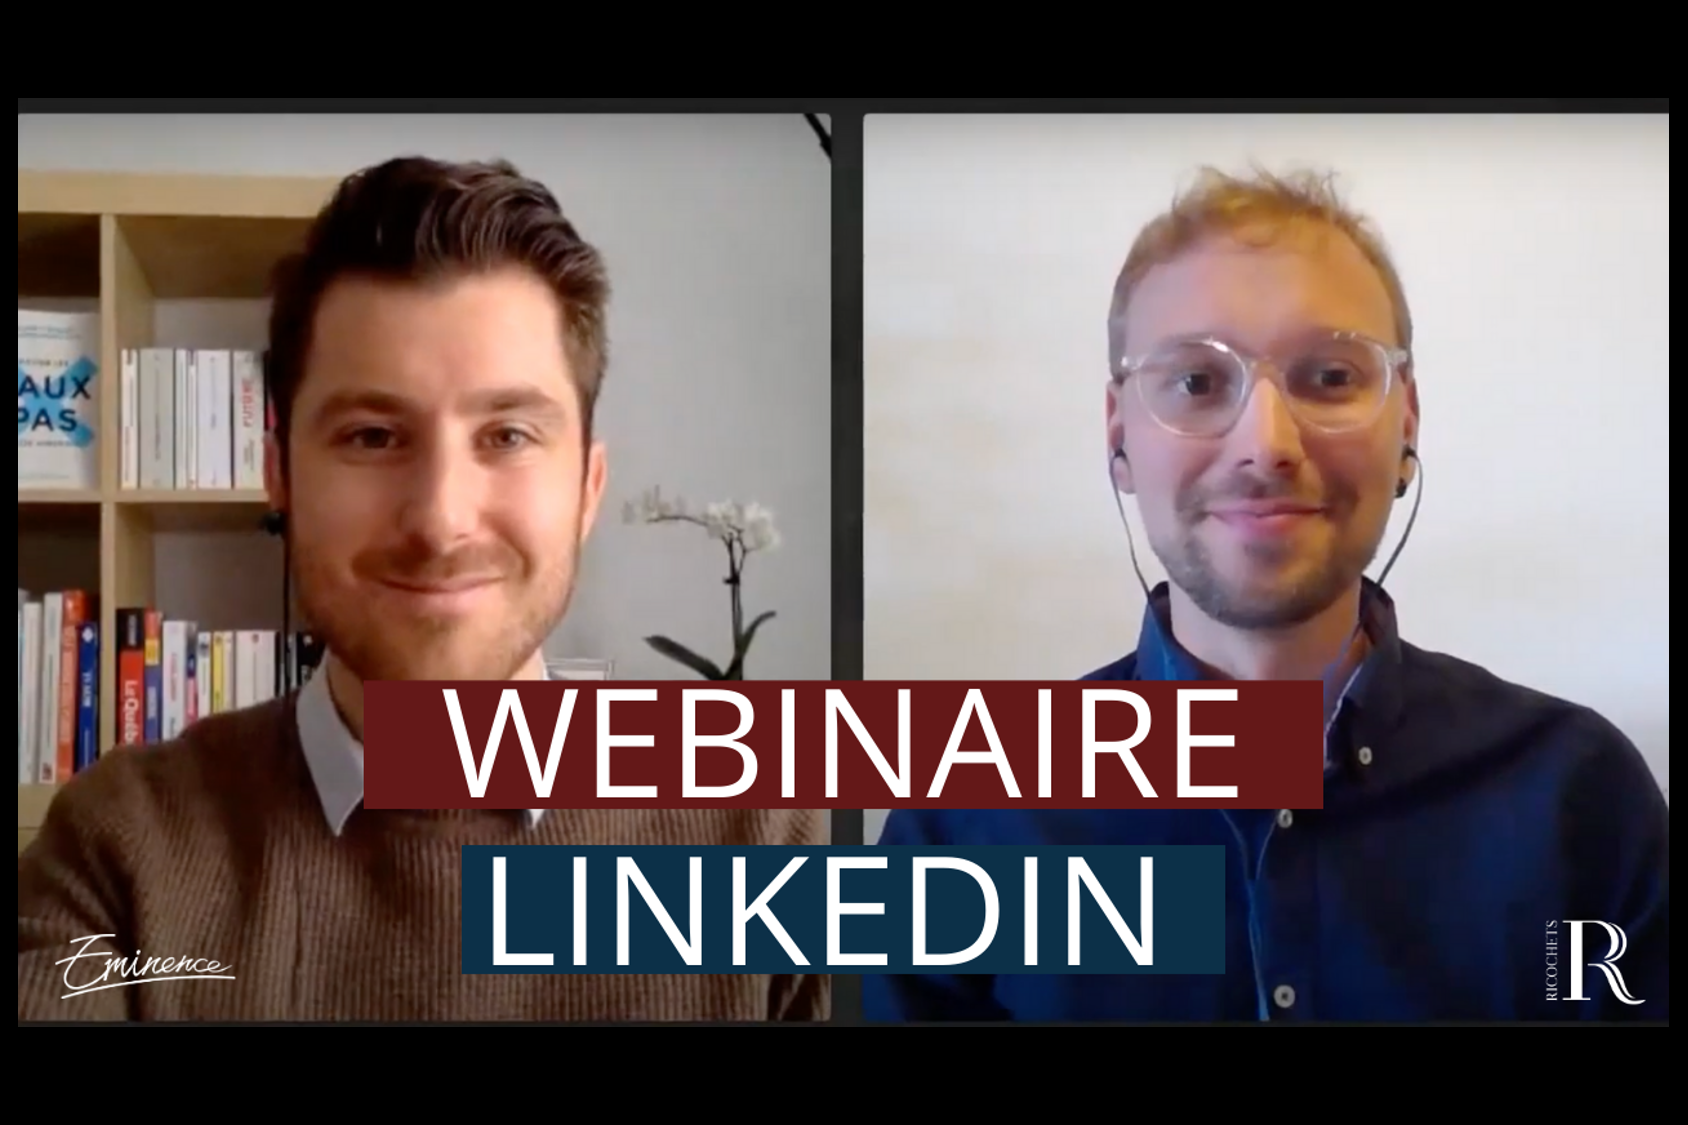 Webinaire-LinkedIn-Communication-Covid